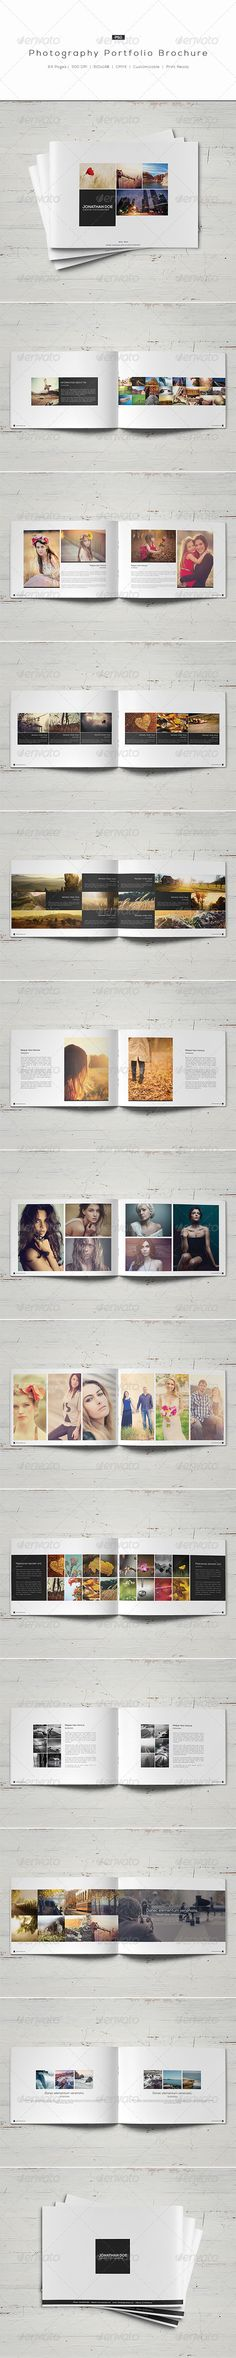 Photography Portfolio Brochure - Liking the balance and symmetry used in these layouts